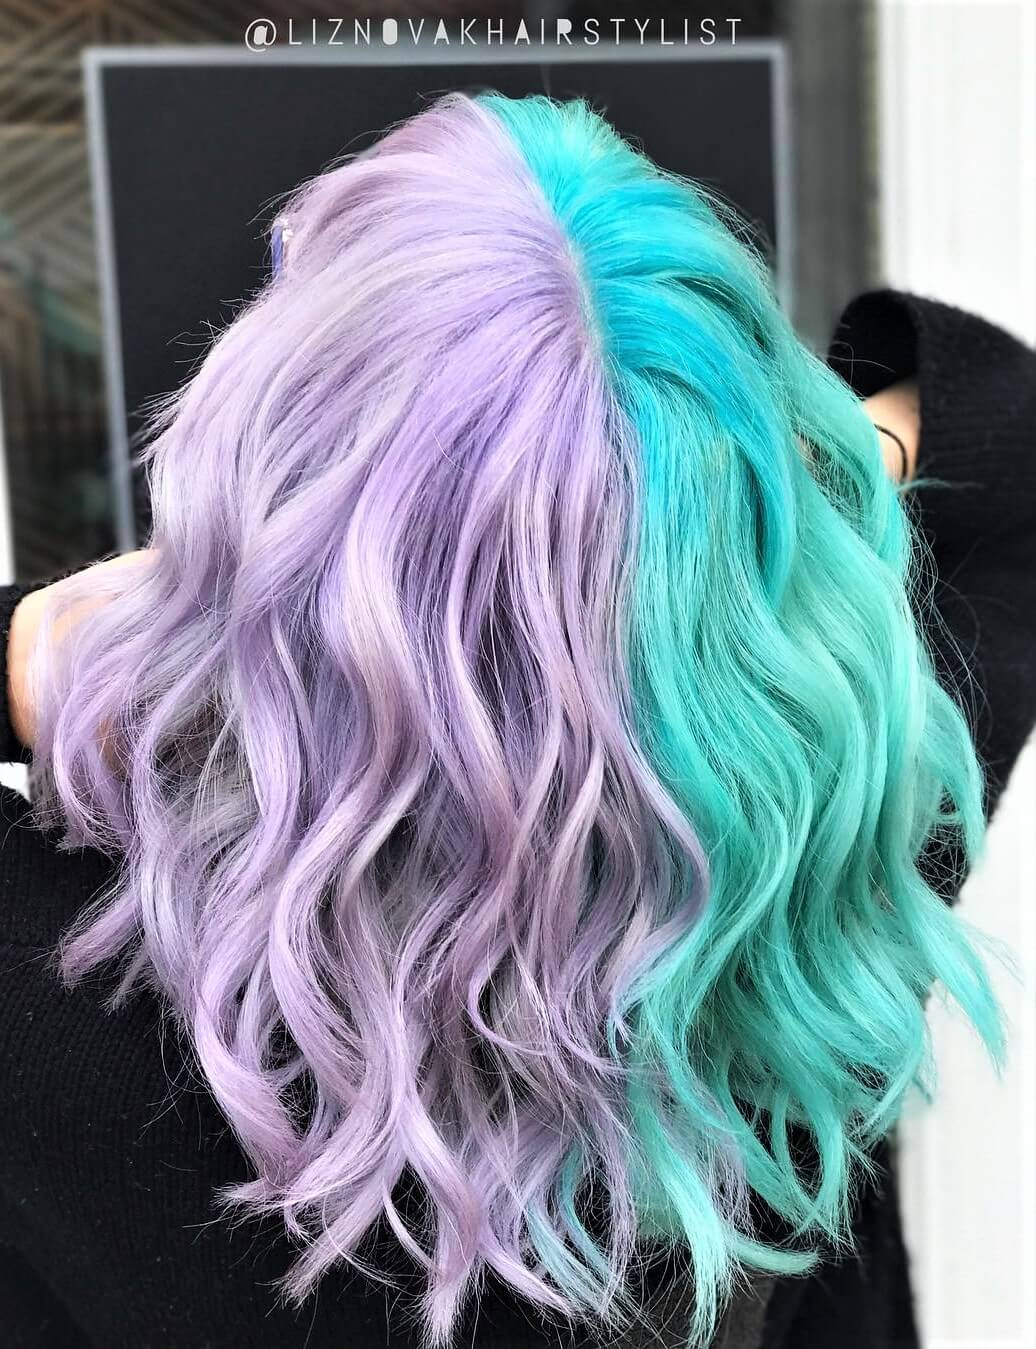 Unicorn hair symmetry styled with very diluted Purple Rain hair dye & Aquamarine dye by liznovakhairstylist